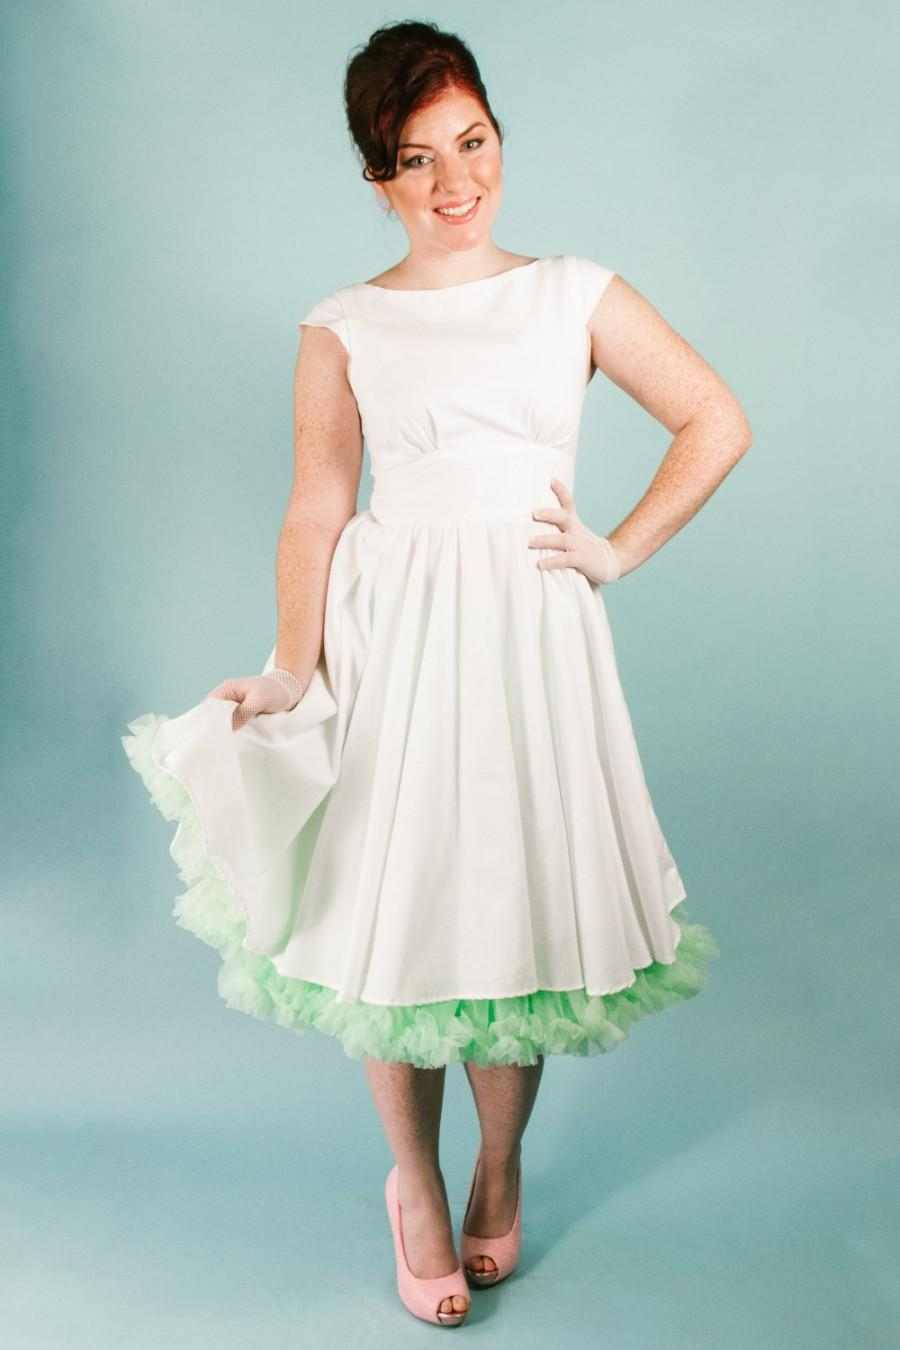 Awesome Short Wedding Dress With Pockets Contemporary - Styles ...